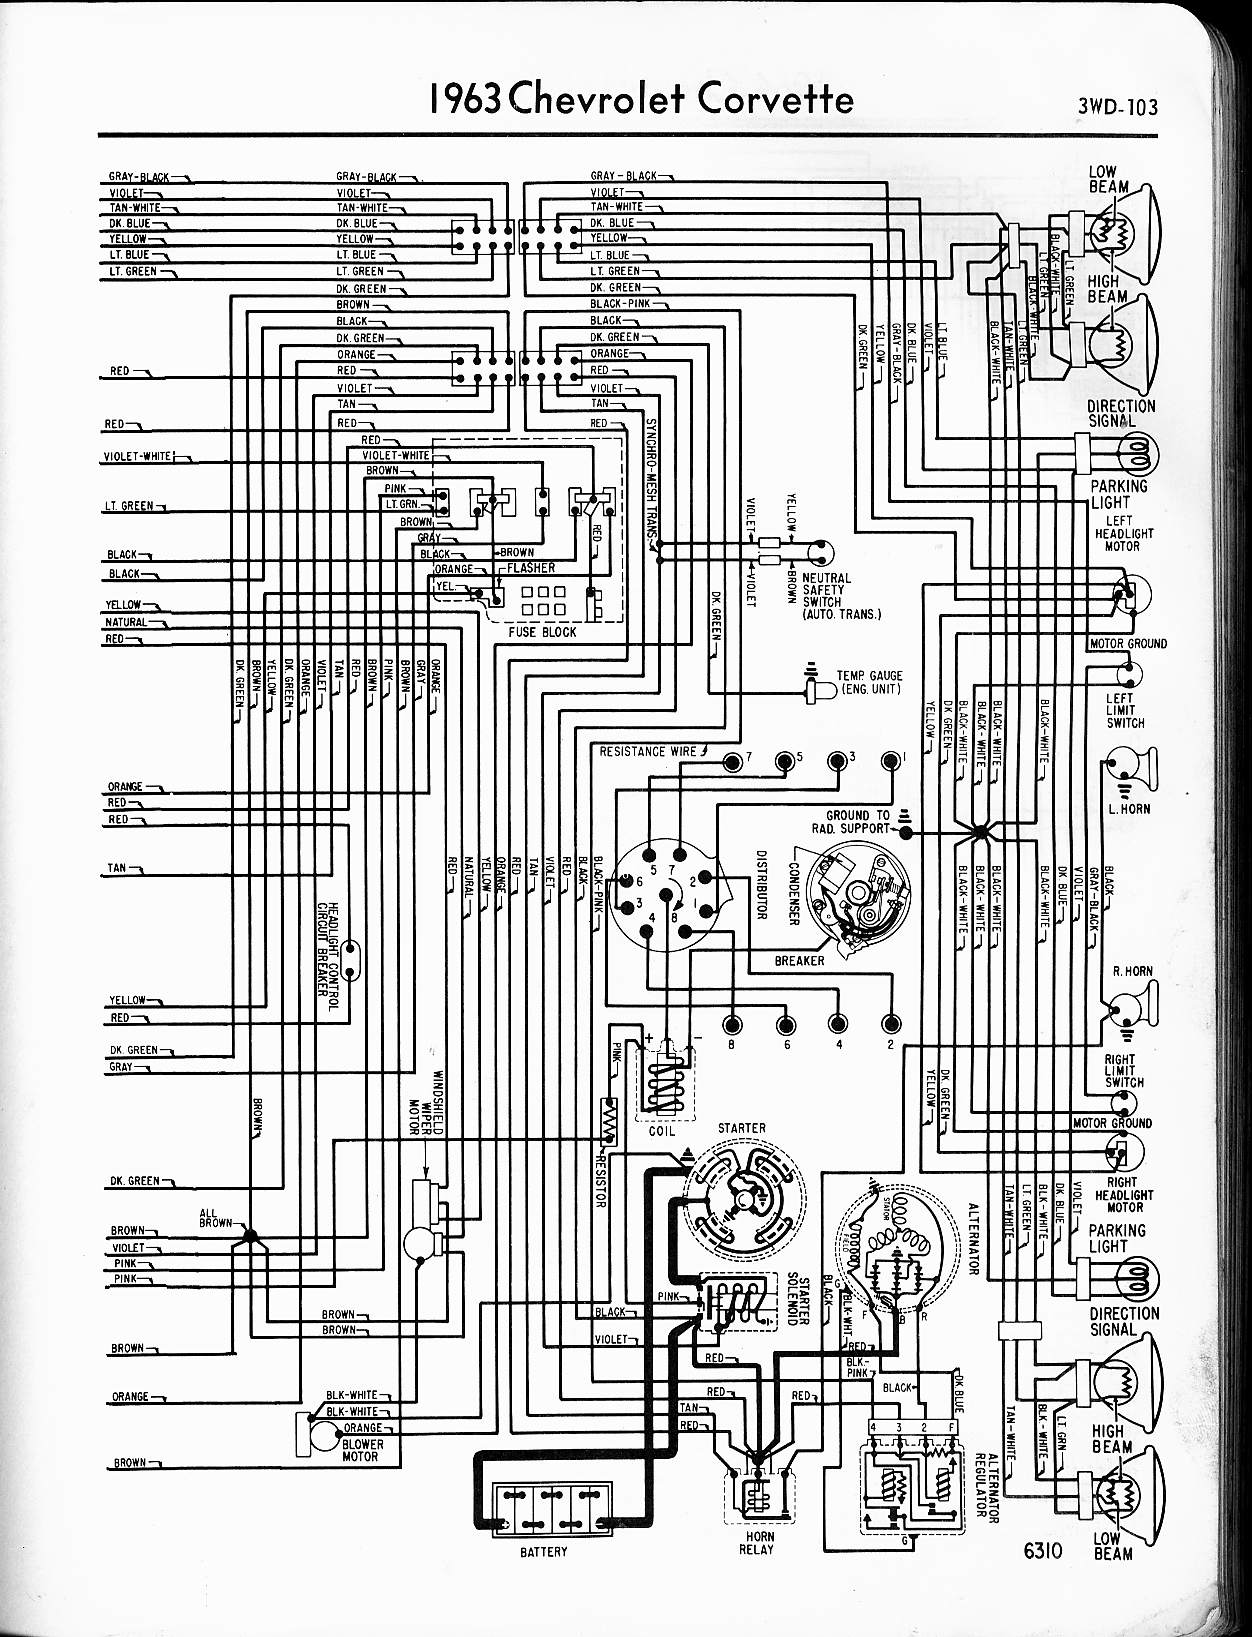 MWireChev63_3WD 103 57 65 chevy wiring diagrams 66 Corvette at mifinder.co